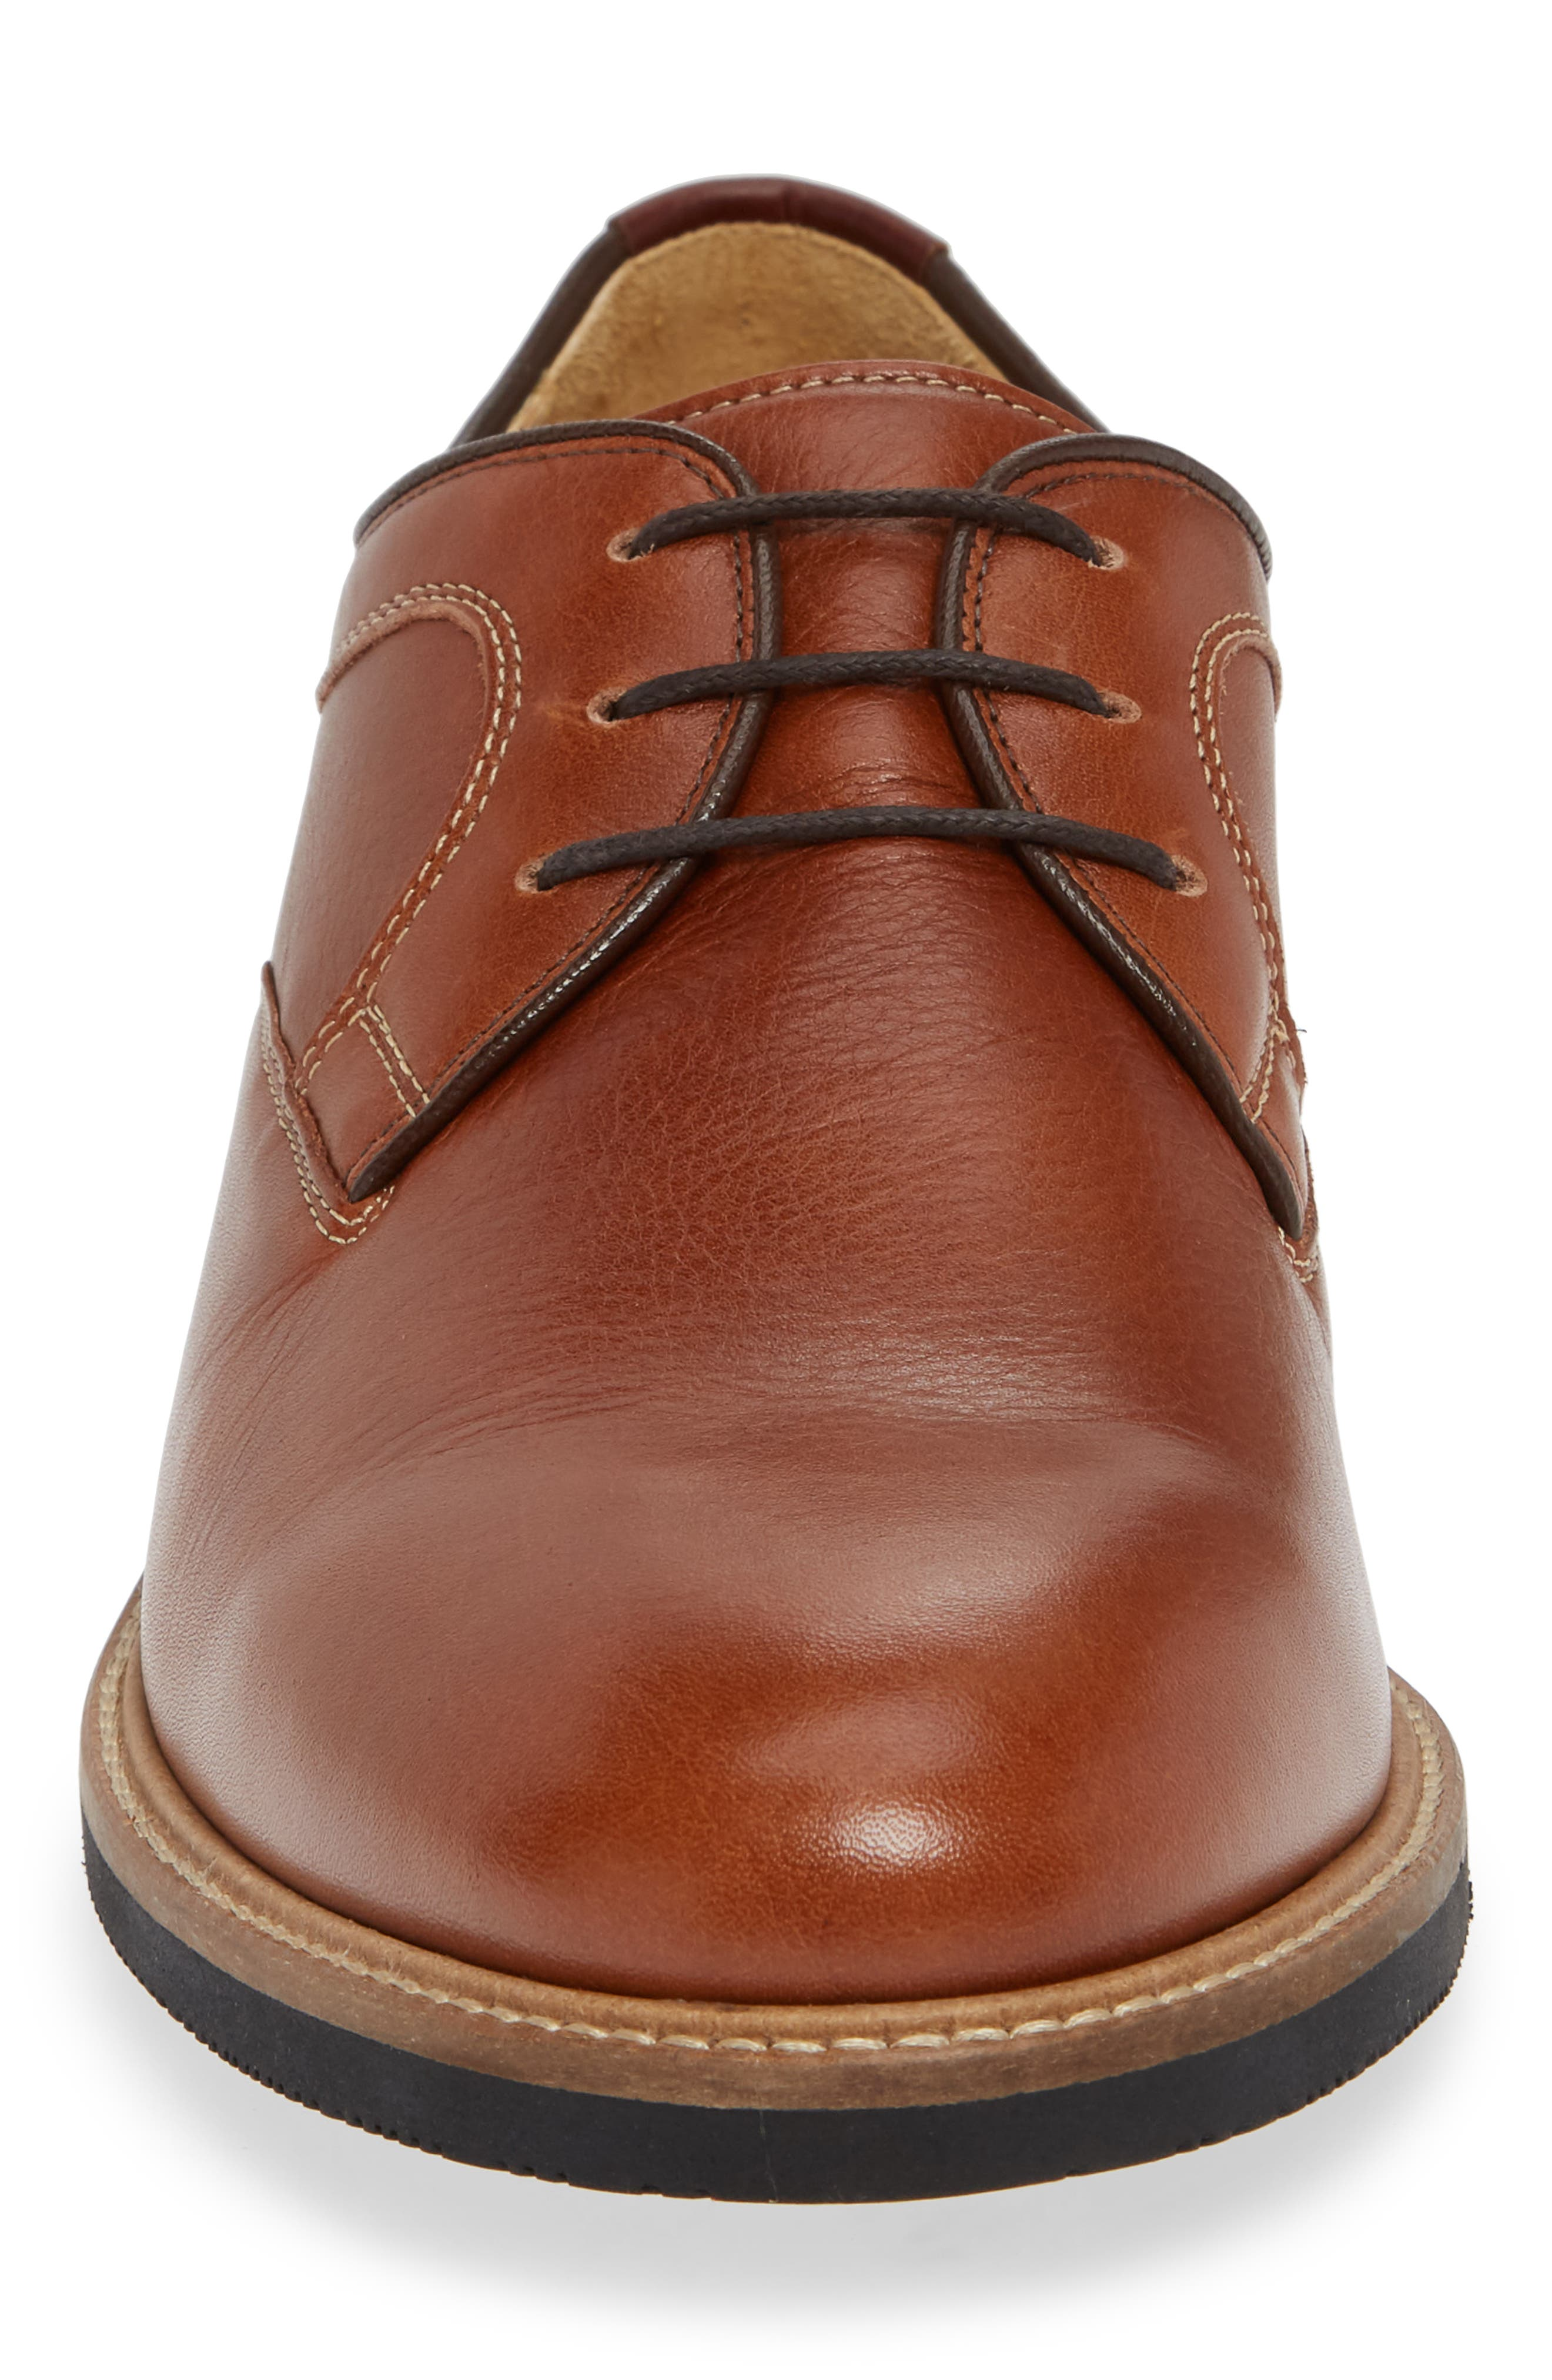 Barlow Plain Toe Derby,                             Alternate thumbnail 4, color,                             DARK TAN LEATHER